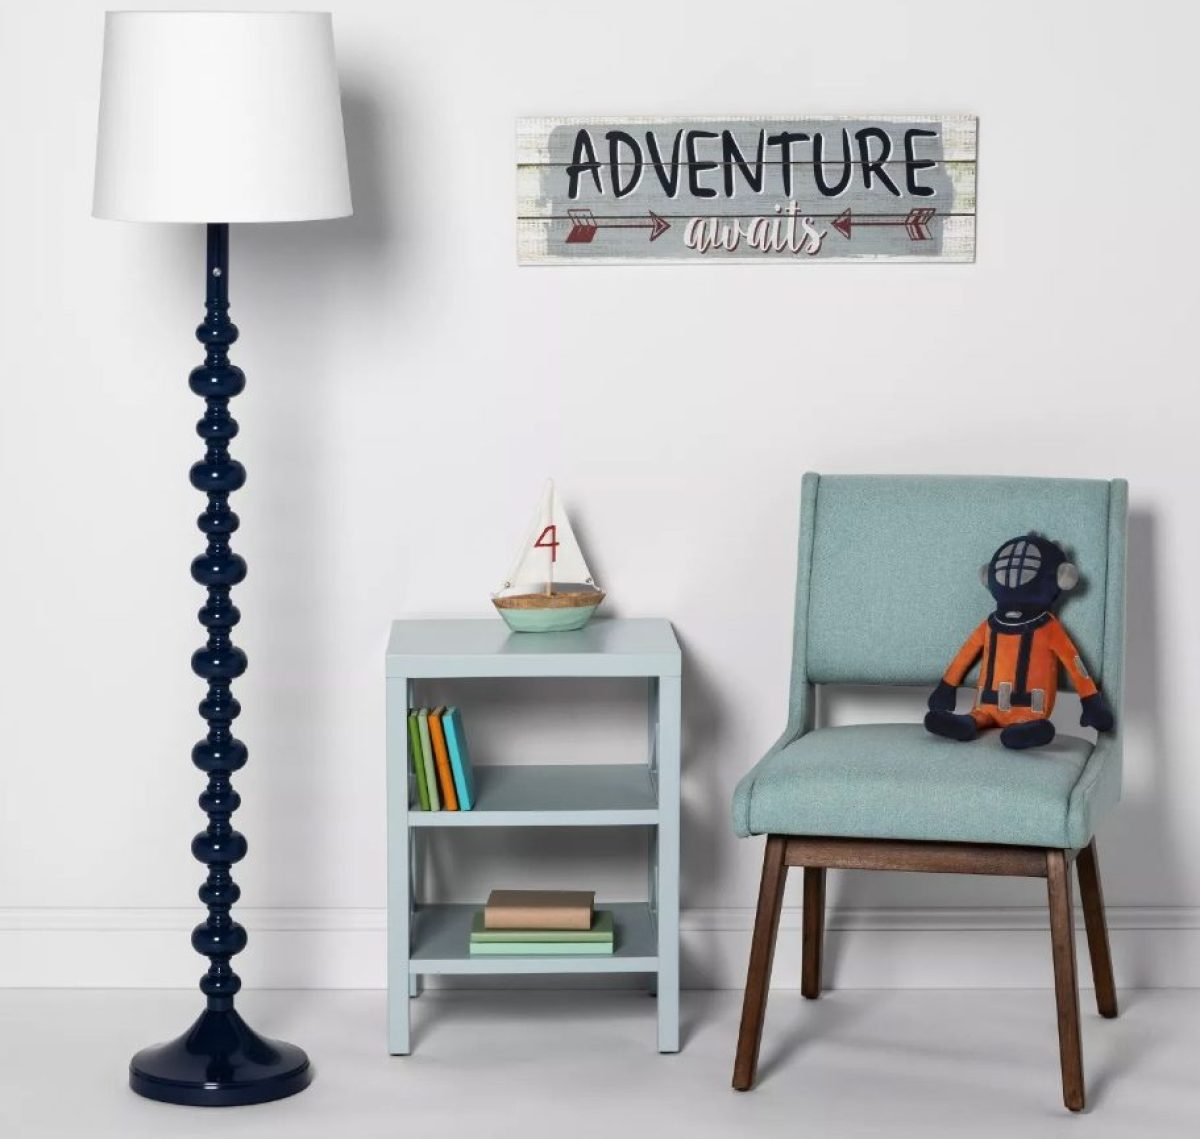 childrens room with lamp, small bookshelf with books, with sailboat on top, chair with monkey stuffed animal, and sign on wall